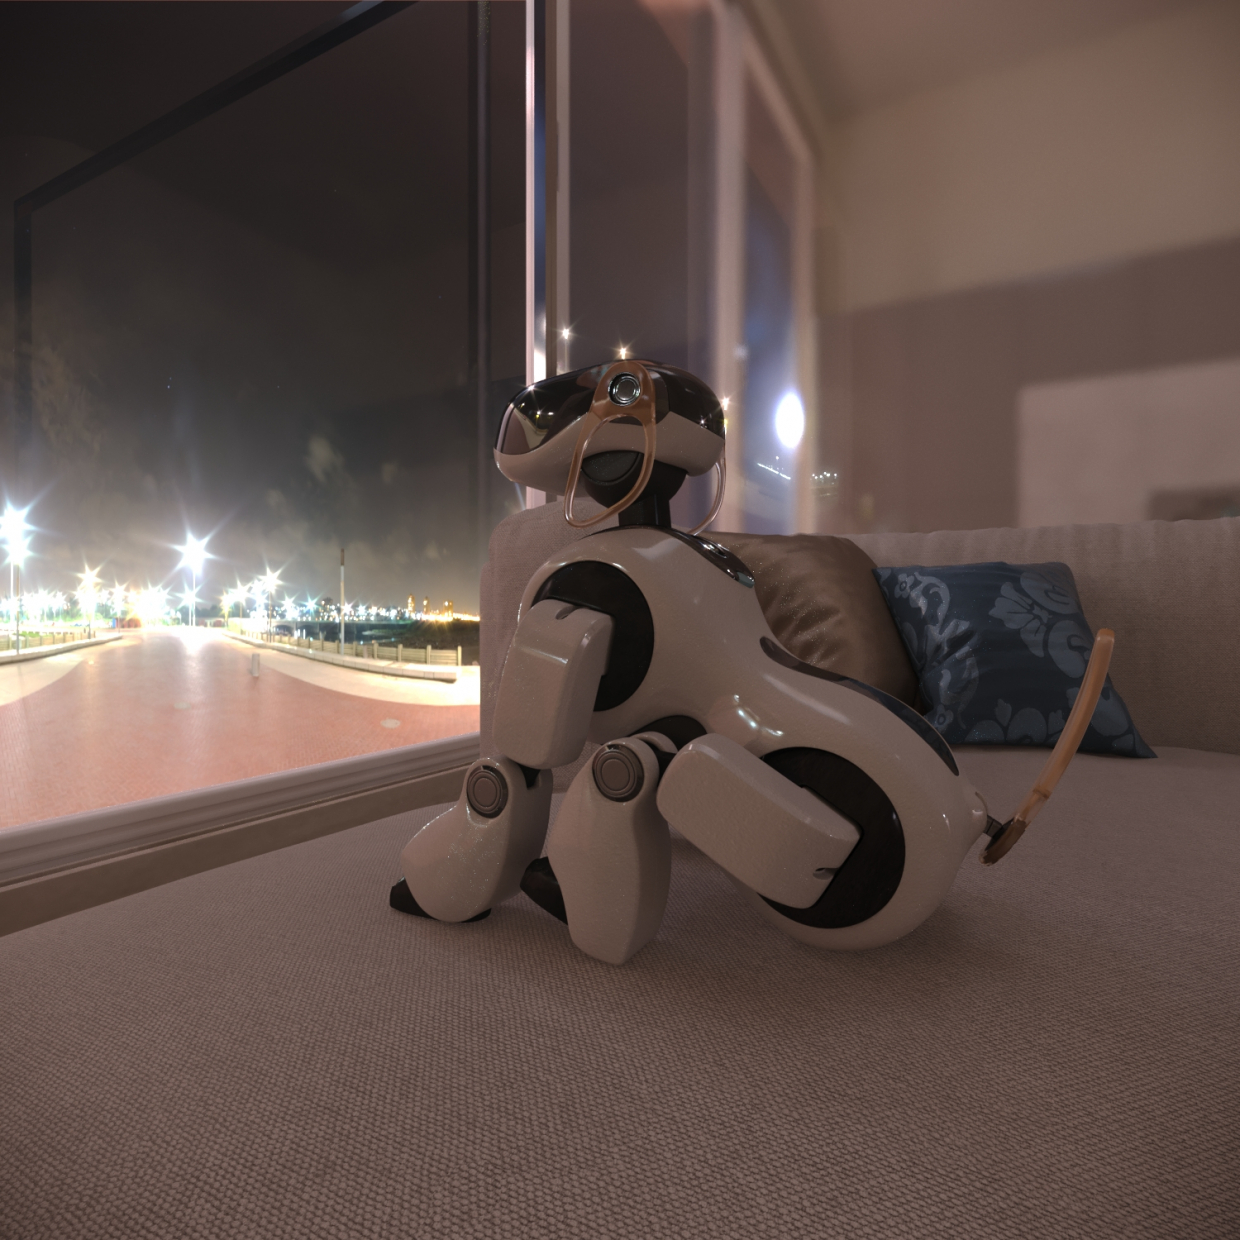 Aibo is not sleeping in 3d max corona render image